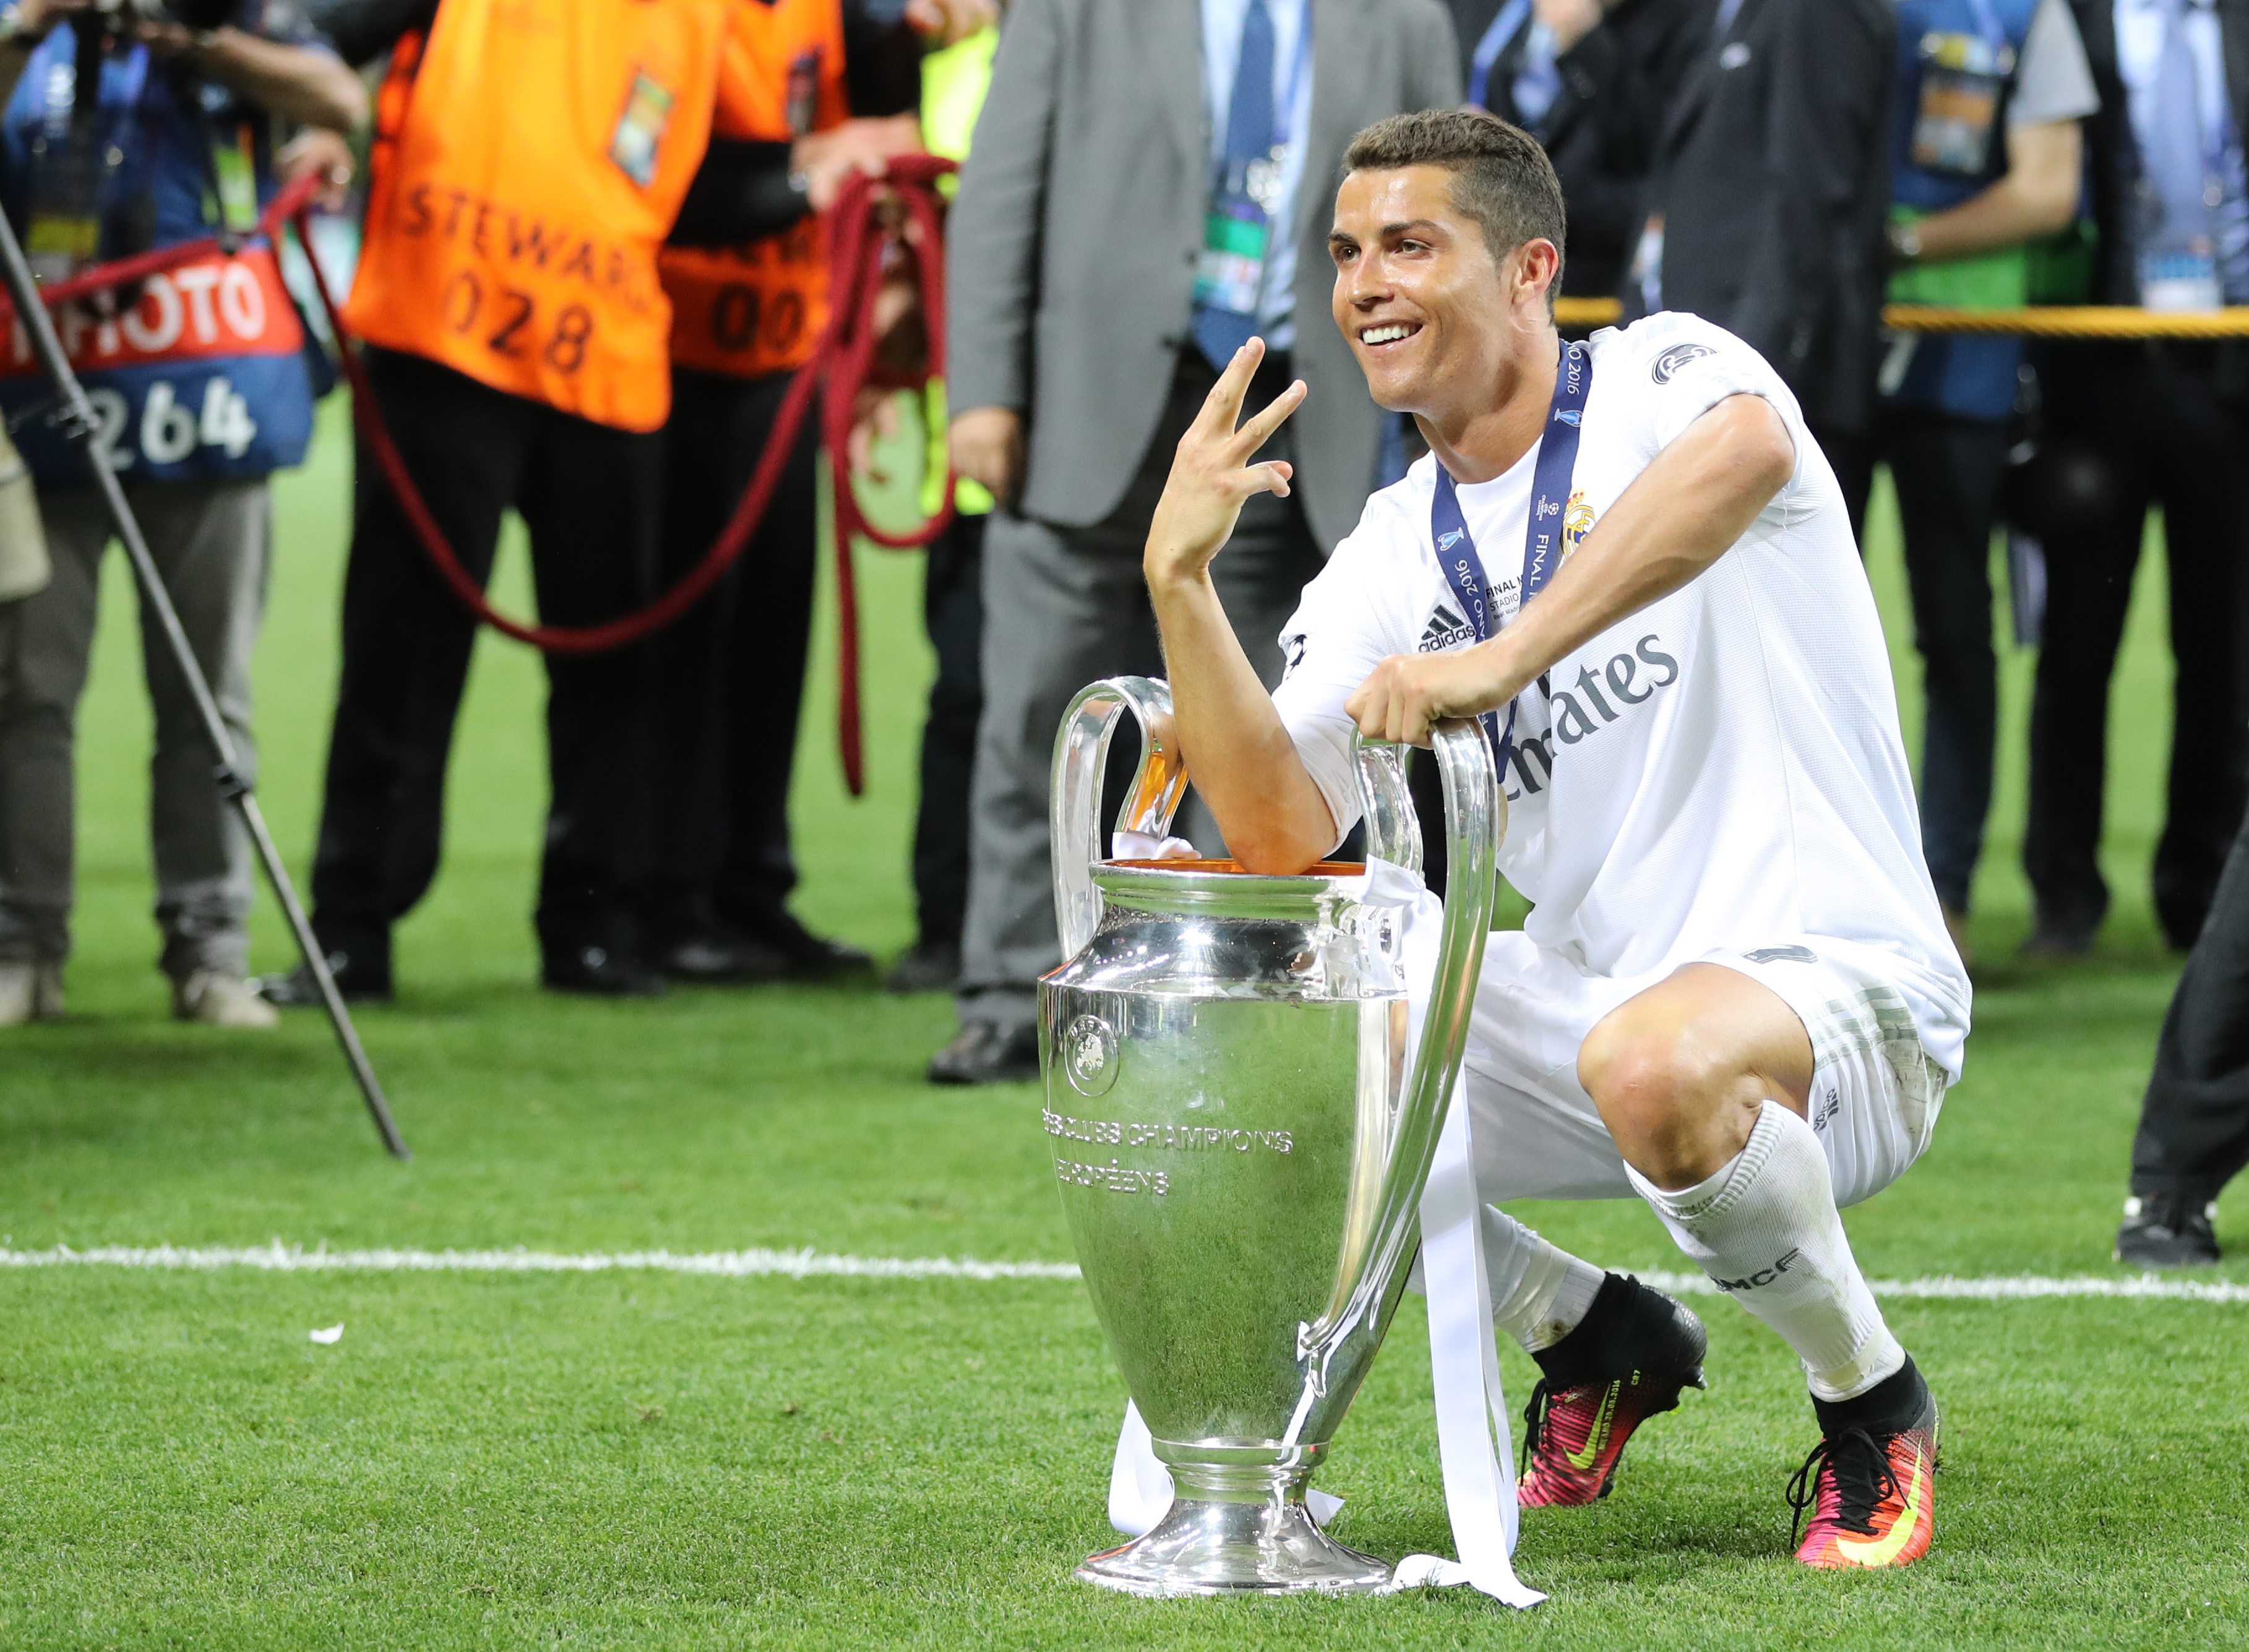 Ronaldo is set to win his sixth European title with his third team. Image: PA Images